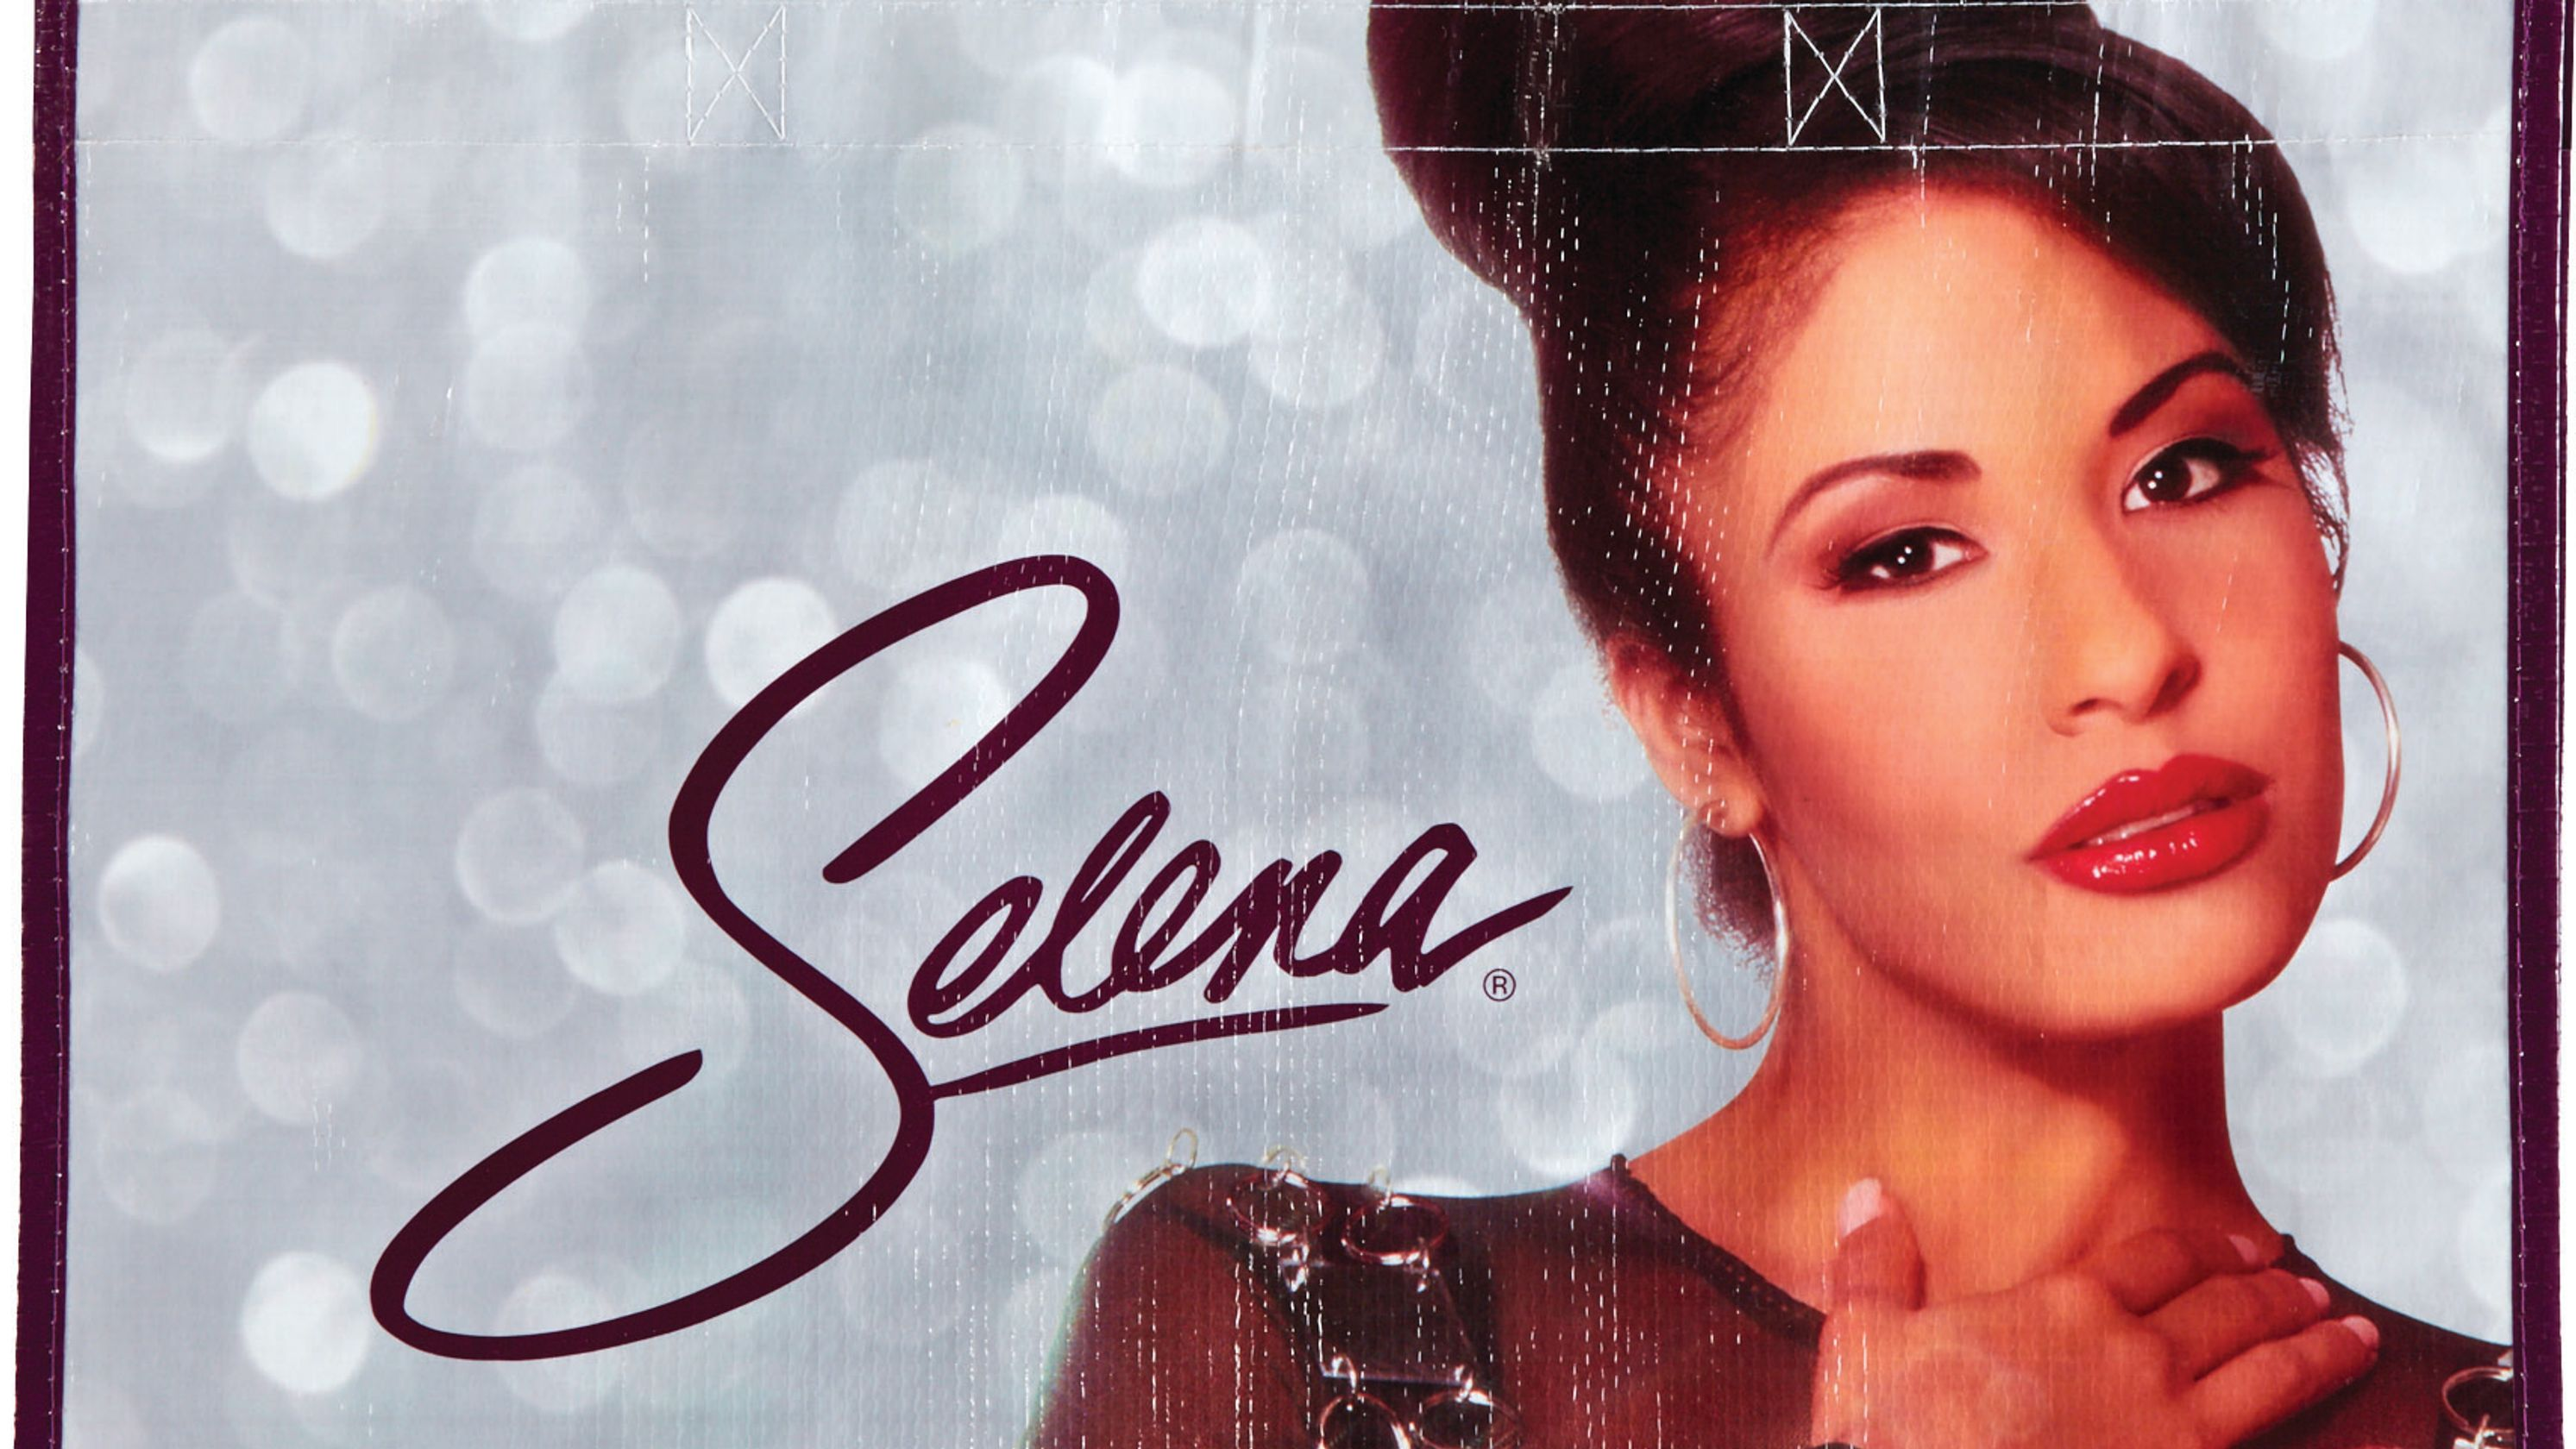 Selena HEB bags are back on sale in Texas, and they'll likely fly off the shelves